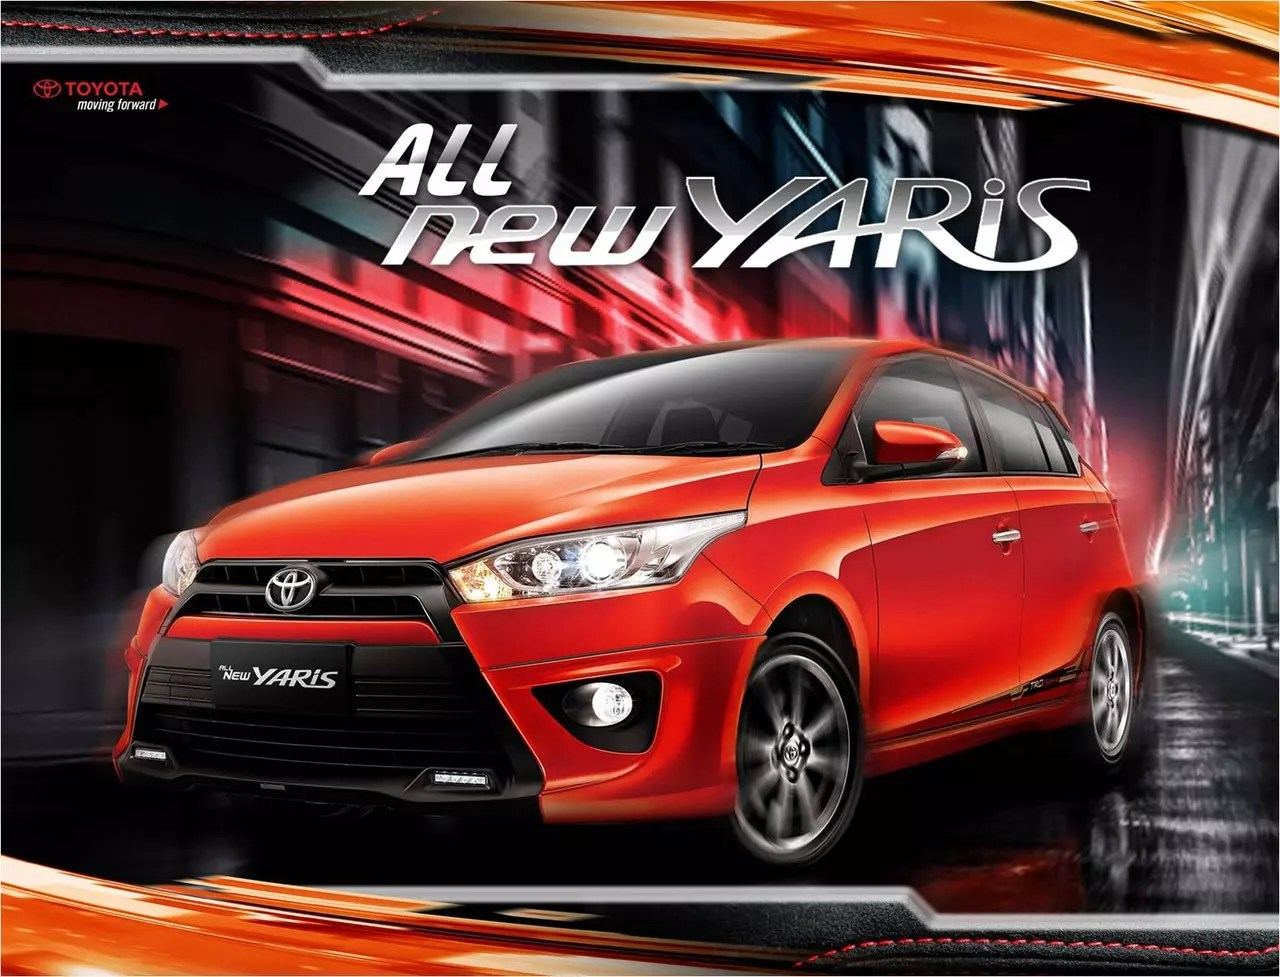 all new yaris trd sportivo 2017 grand veloz vs mobilio gambar modifikasi mobil 2010 modif